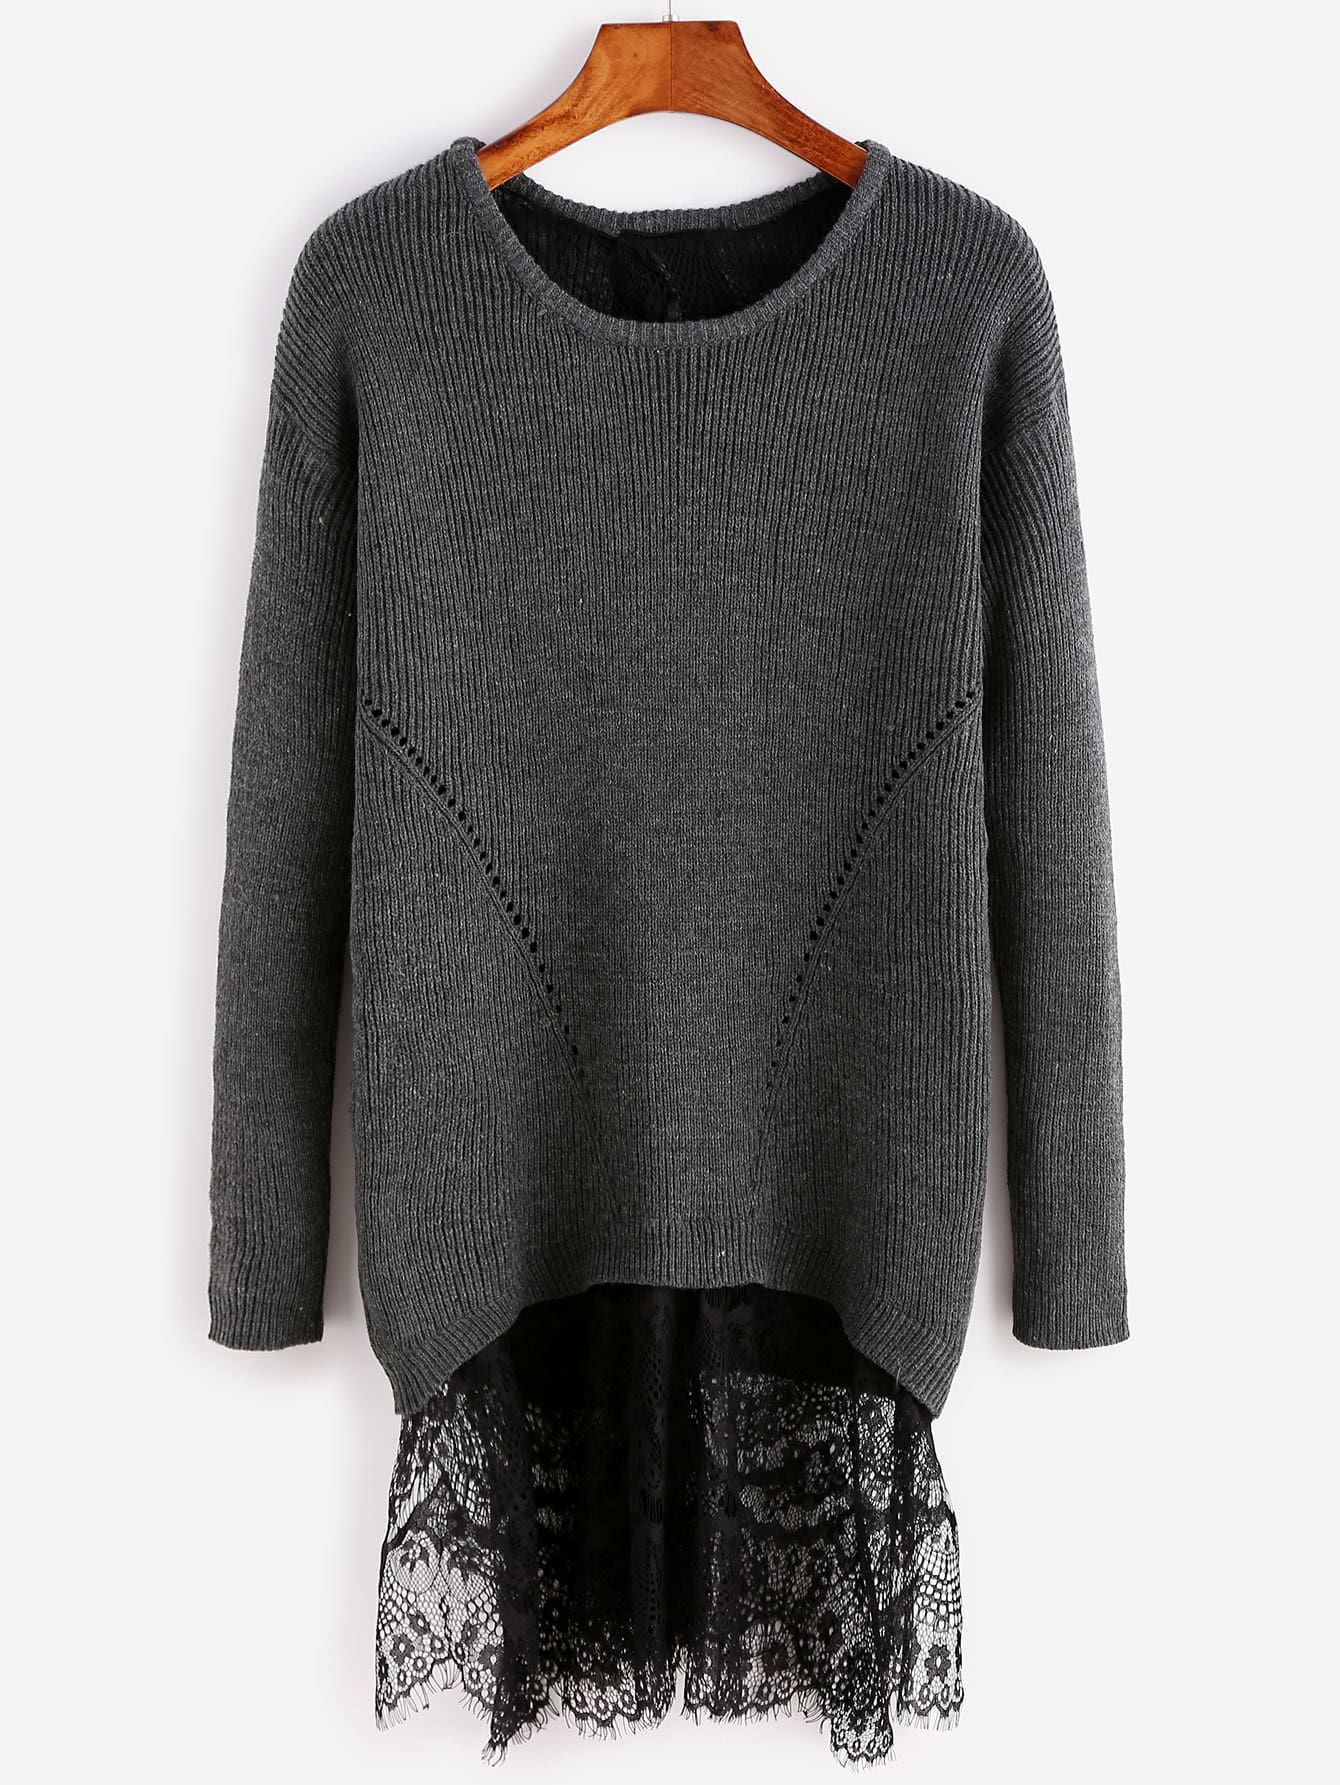 Black Drop Shoulder Split Back Sweater With Lace Detail sweater160815705